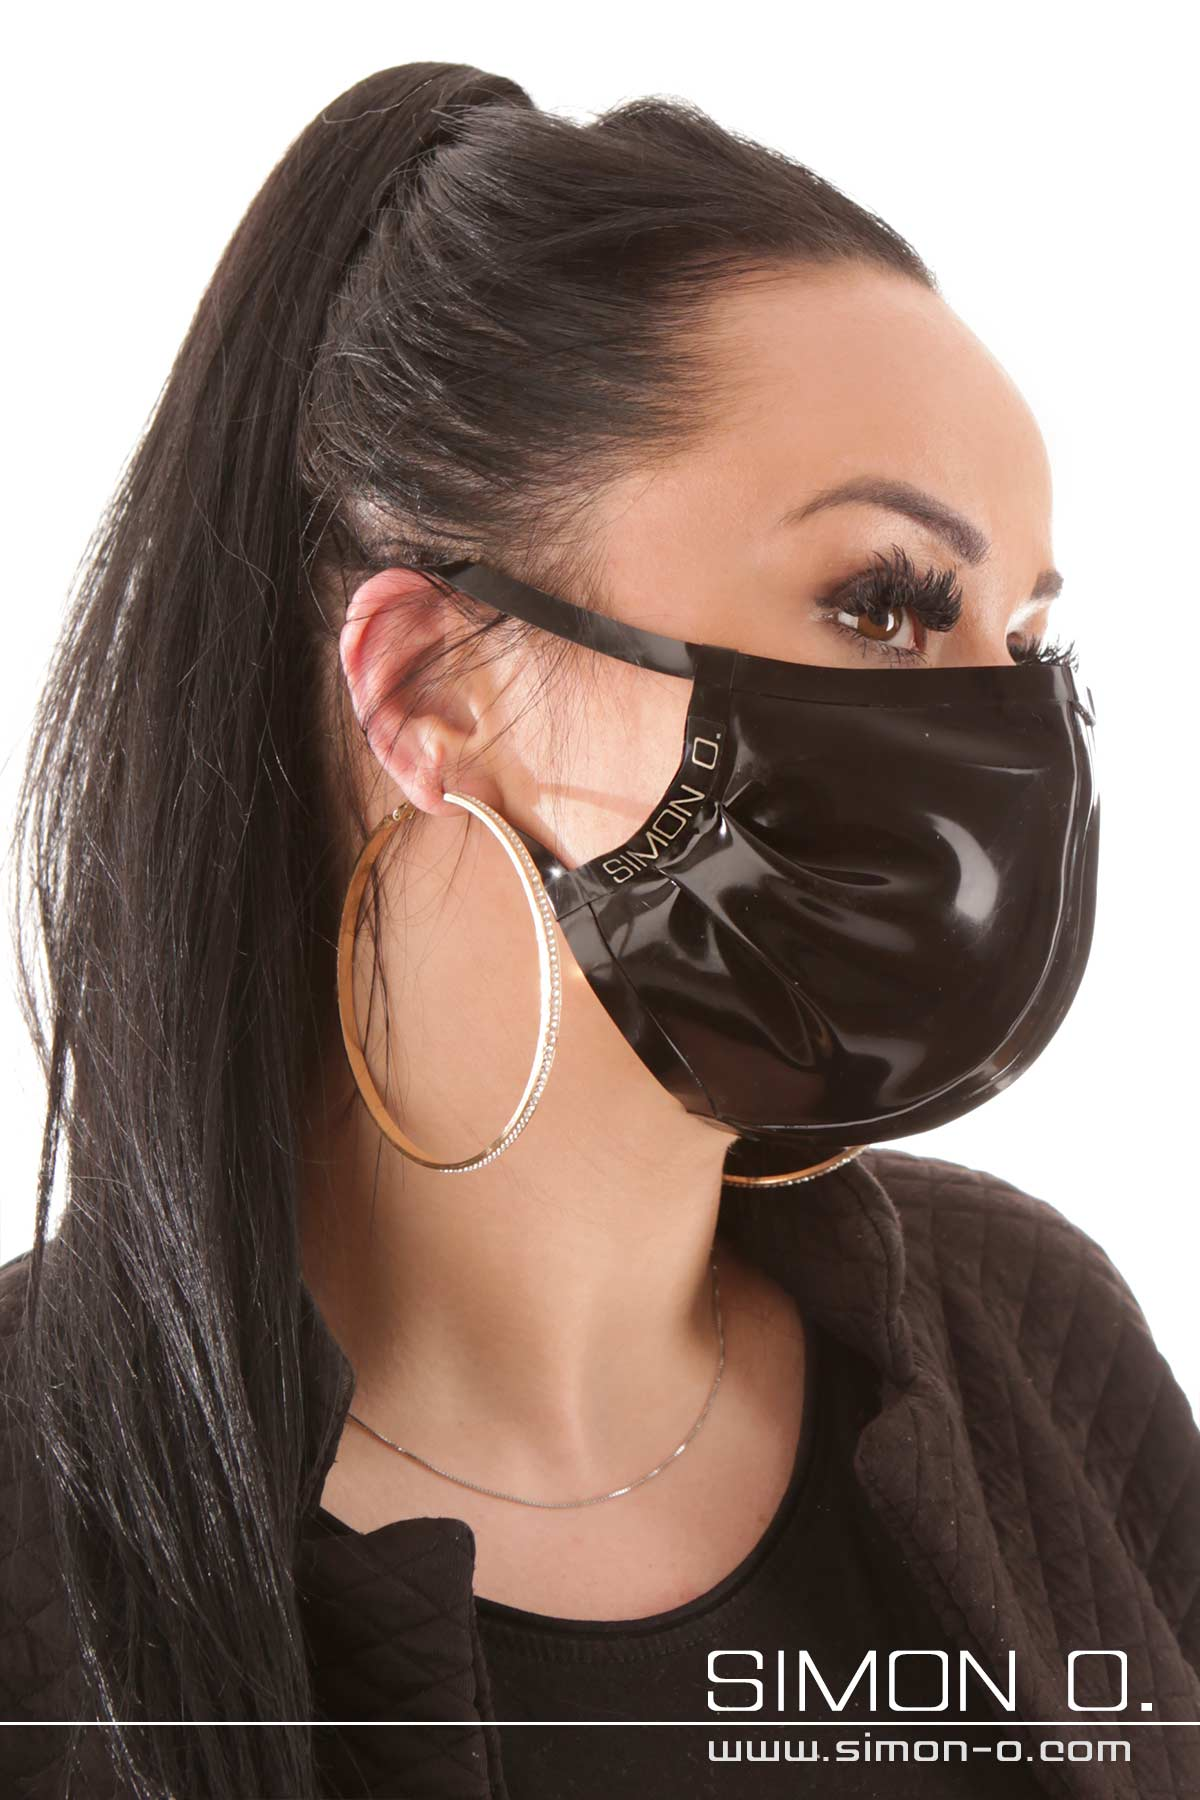 A dark-haired woman is wearing a mouth and nose protector made of latex in black